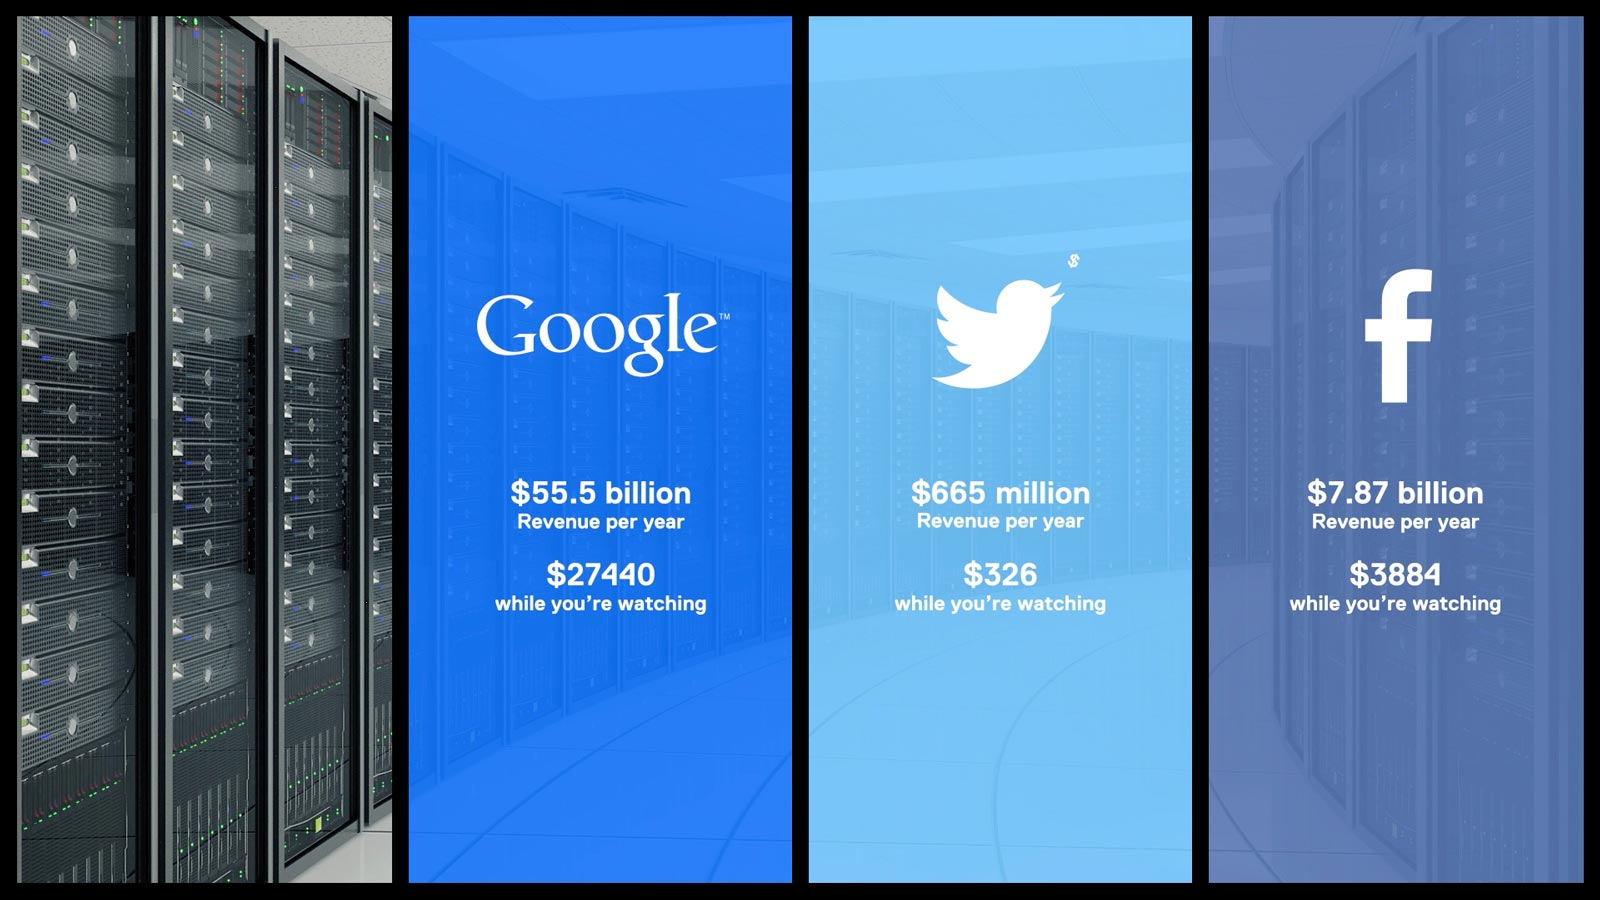 Les revenus annuels de Google, Twitter et Facebook (Image : Do Not Track).